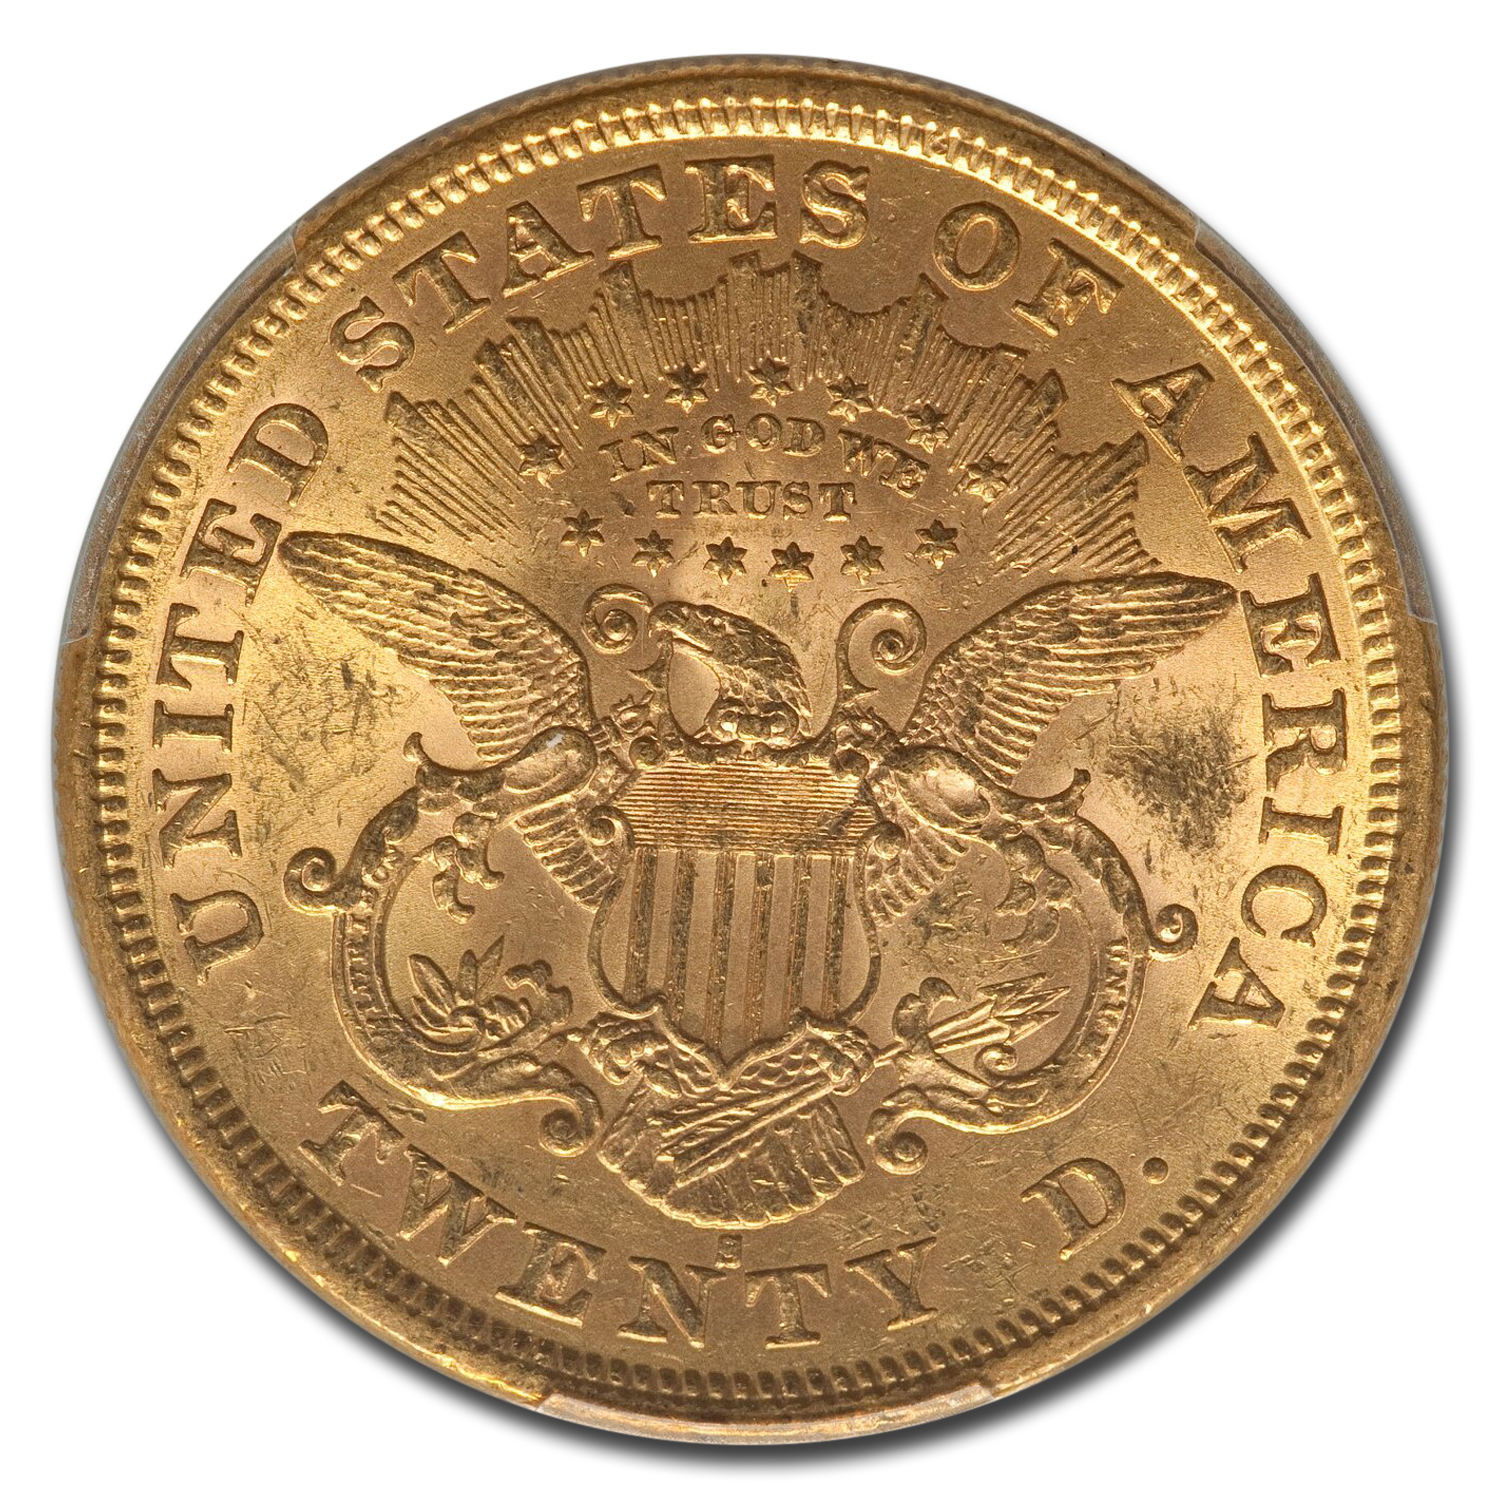 1875-S $20 Gold Liberty Double Eagle - AU-58 PCGS